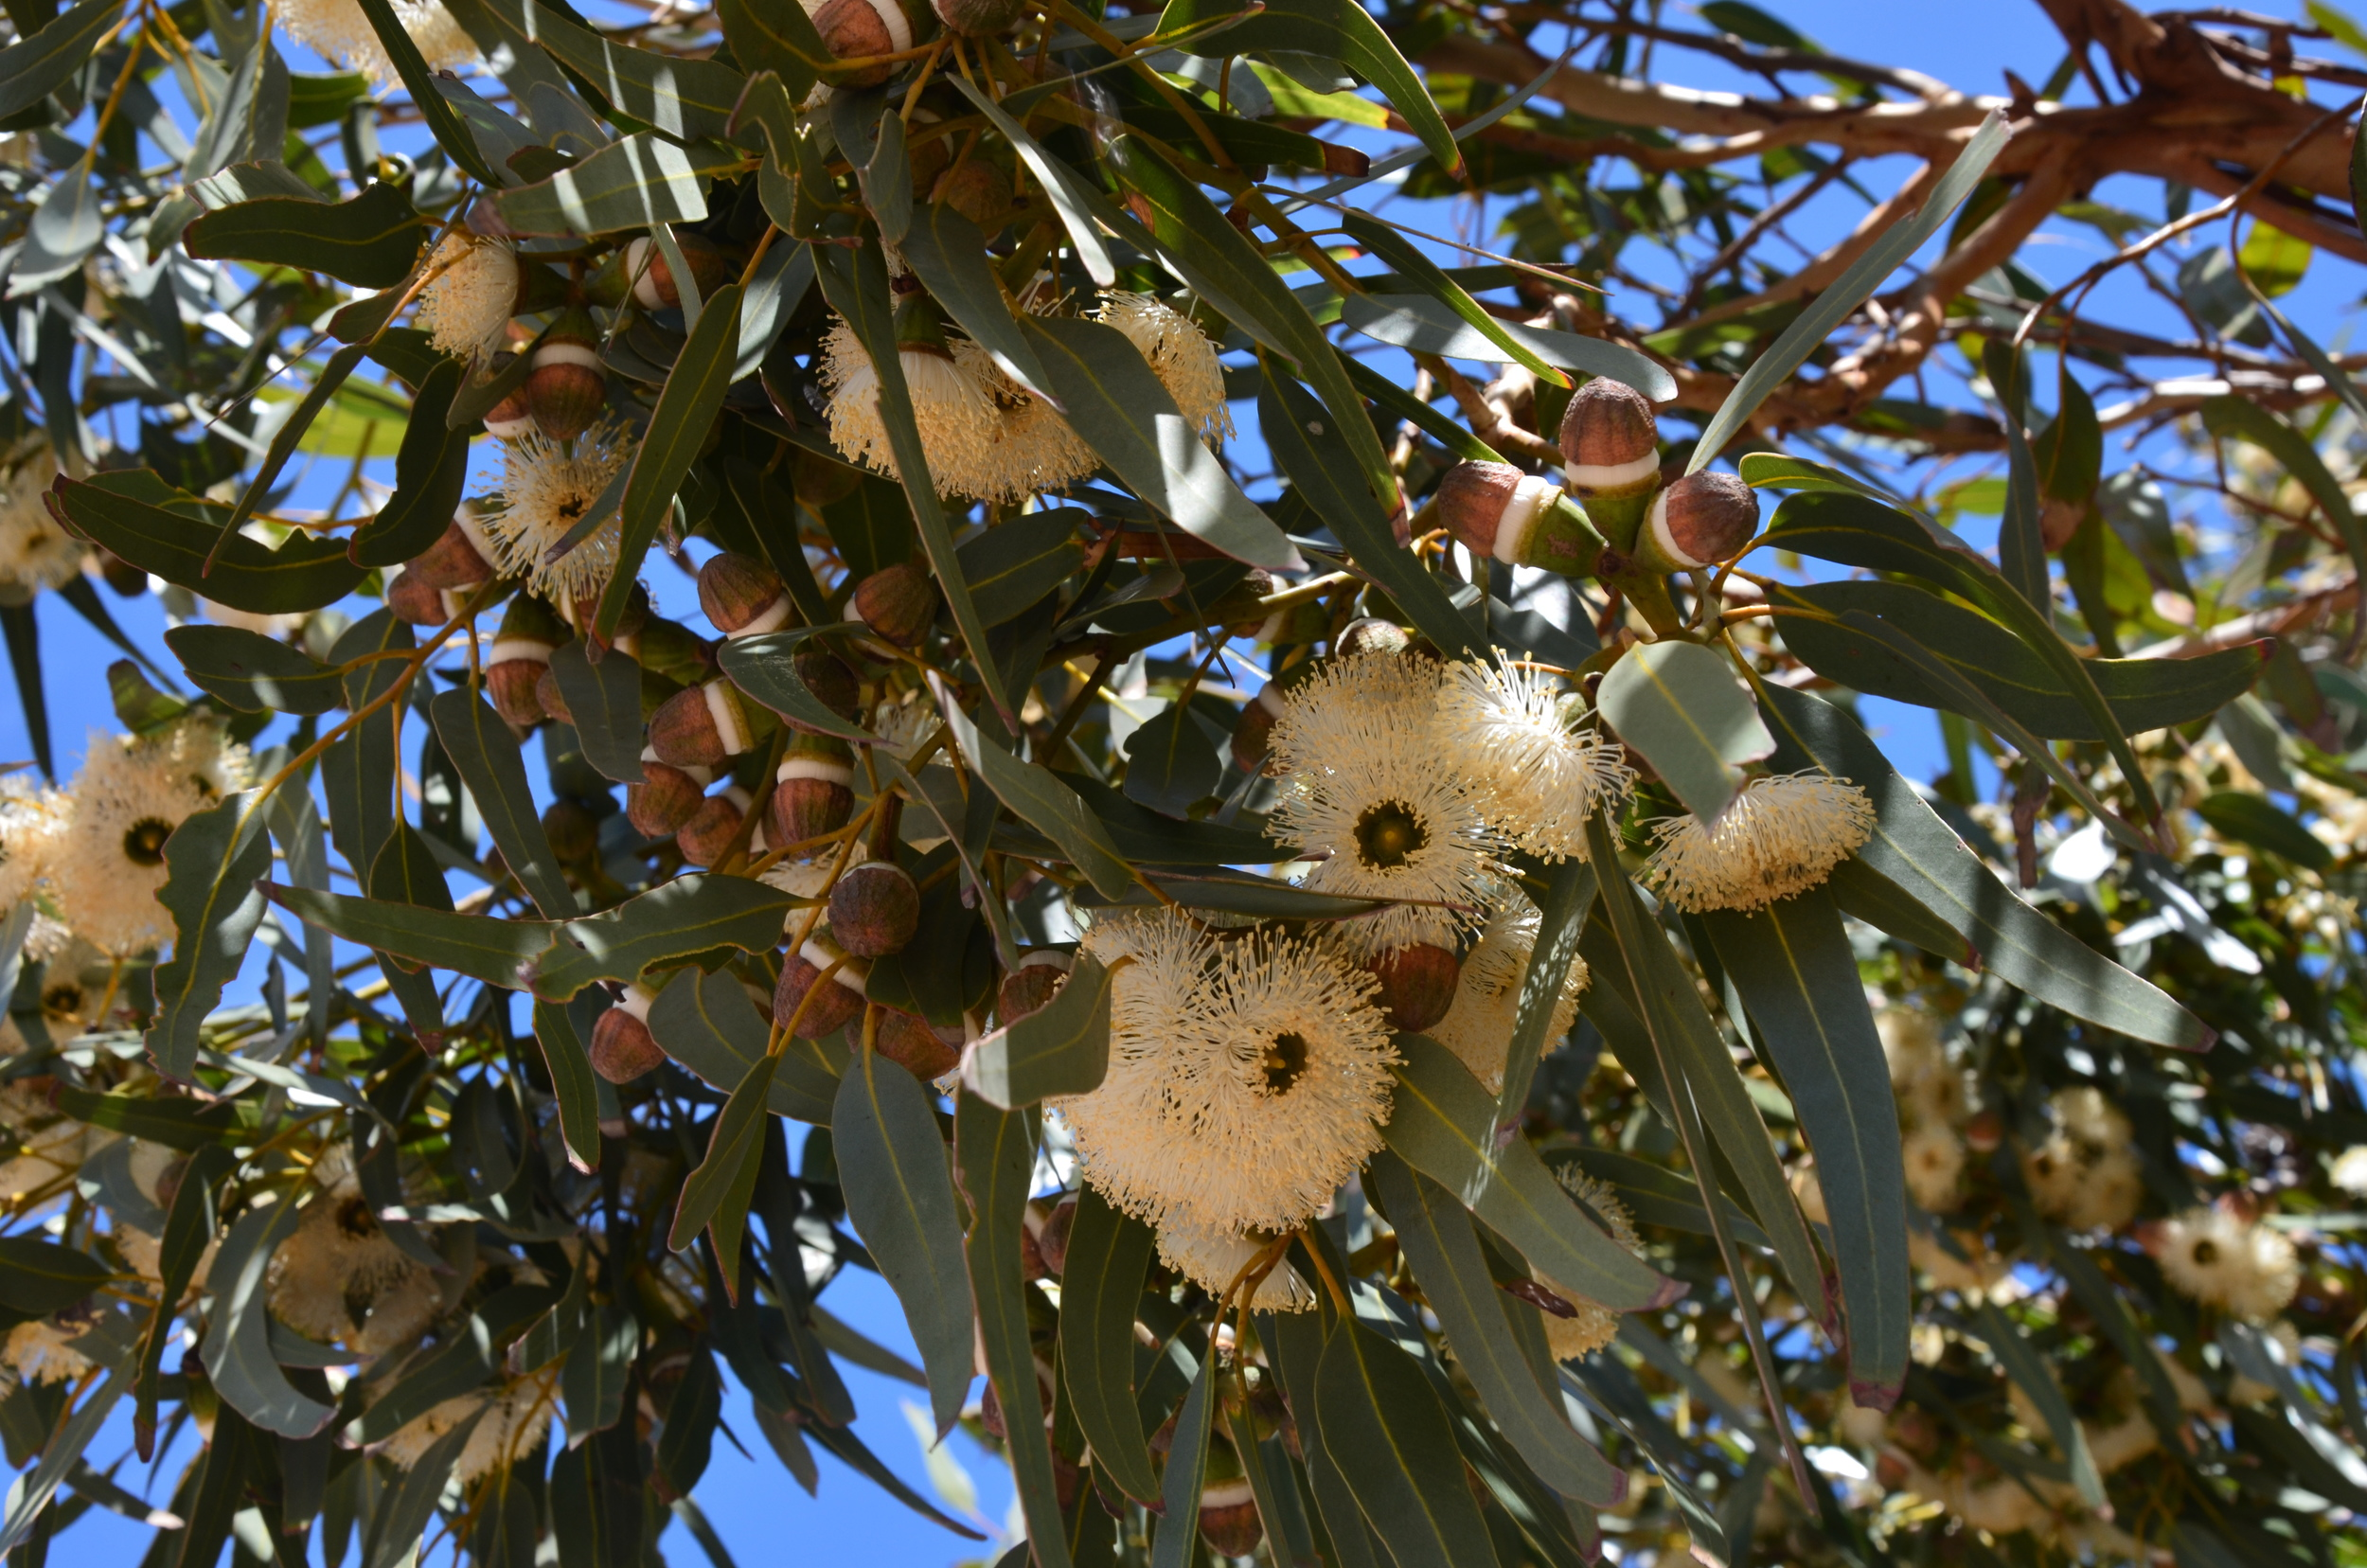 Gumtree blooming ther